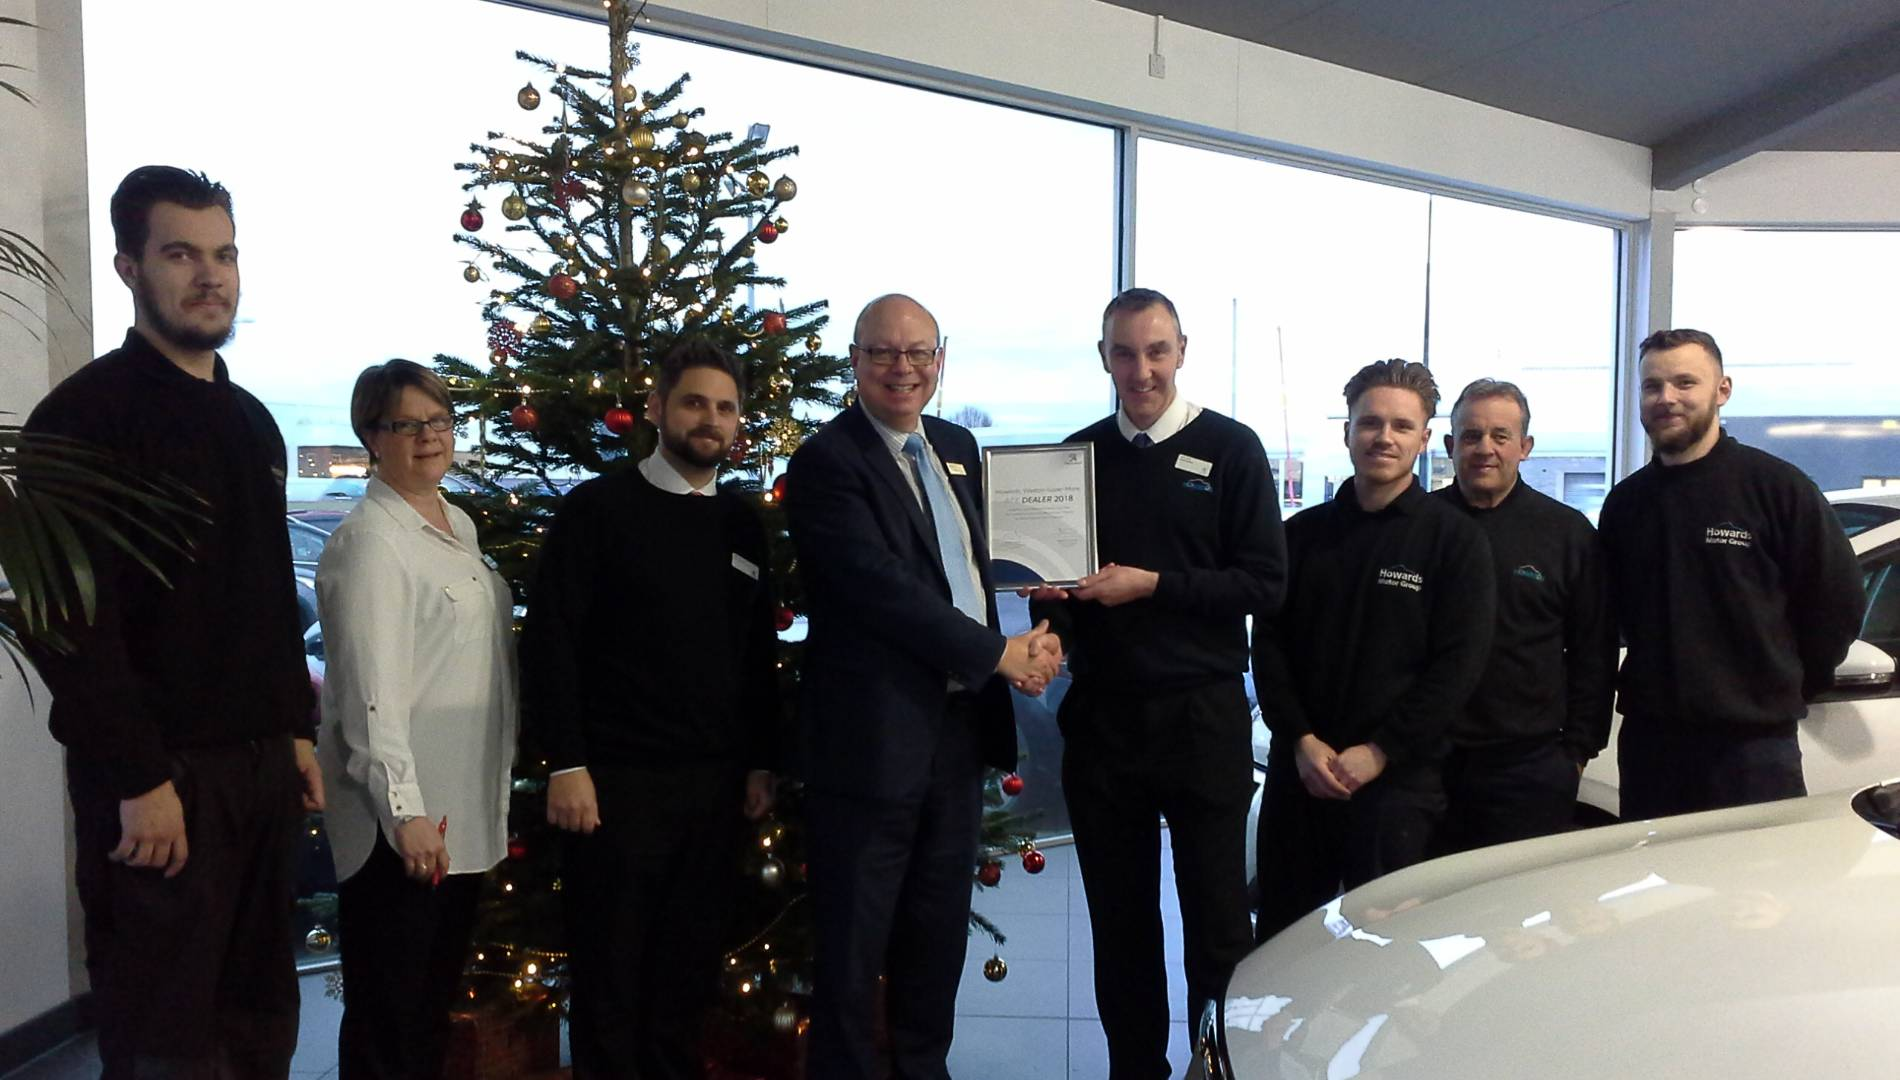 Howards Peugeot Weston-Super-Mare Achieve Highest UK Score for Pro2Ace Accreditation with Peugeot UK.